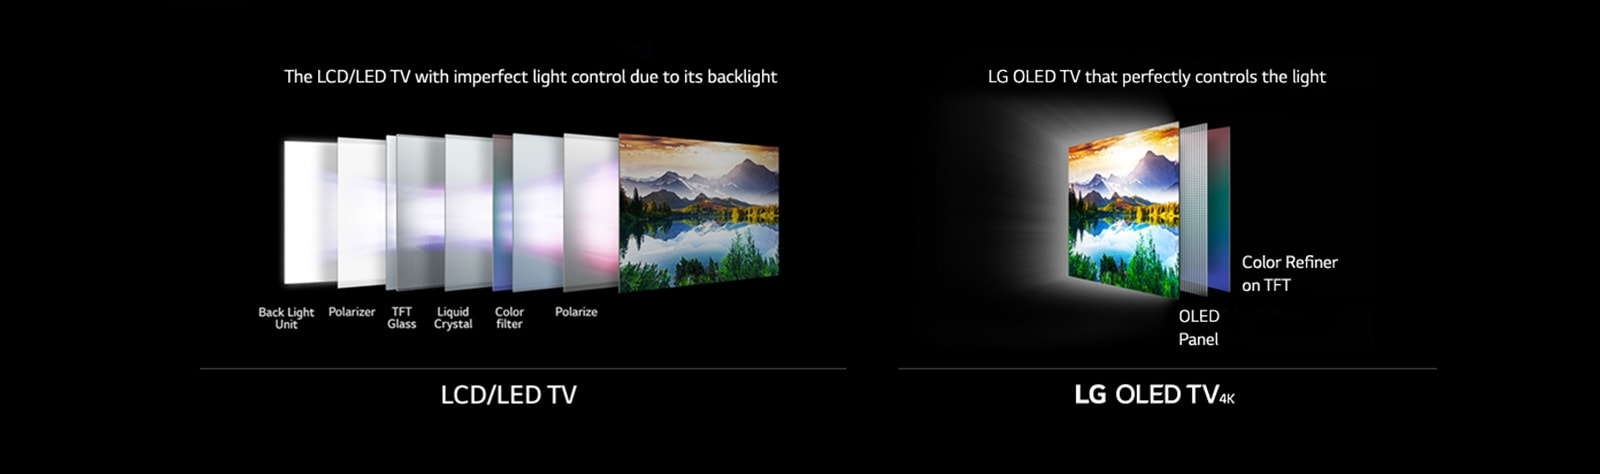 LCD/LED TV-The LCD/LED TV with imperfect light control due to its backlight, Back light Unit, Polarizer, TFT Glass, Liquid Crystal, Color filter, Polarize. LG OLED TV 4K: LG OLED TV that perfectly controls the light, Color Refiner on TFT - OLED Panel